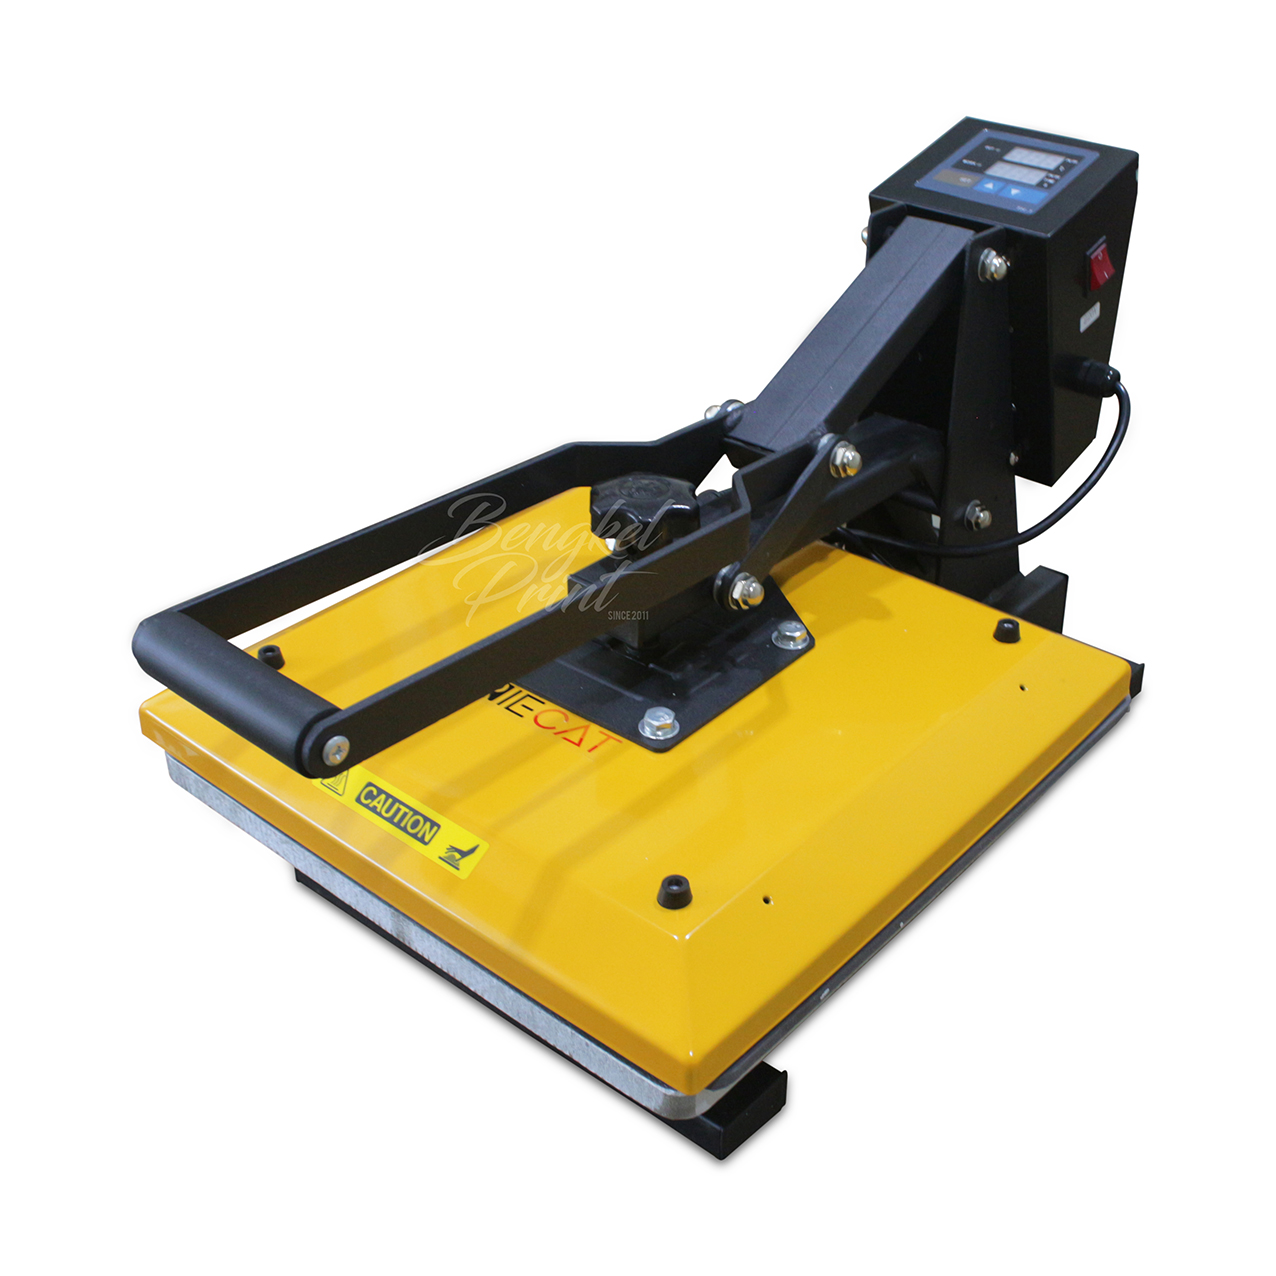 Jual-Mesin-Press-Kaos-RIECAT-38x38-700-watt